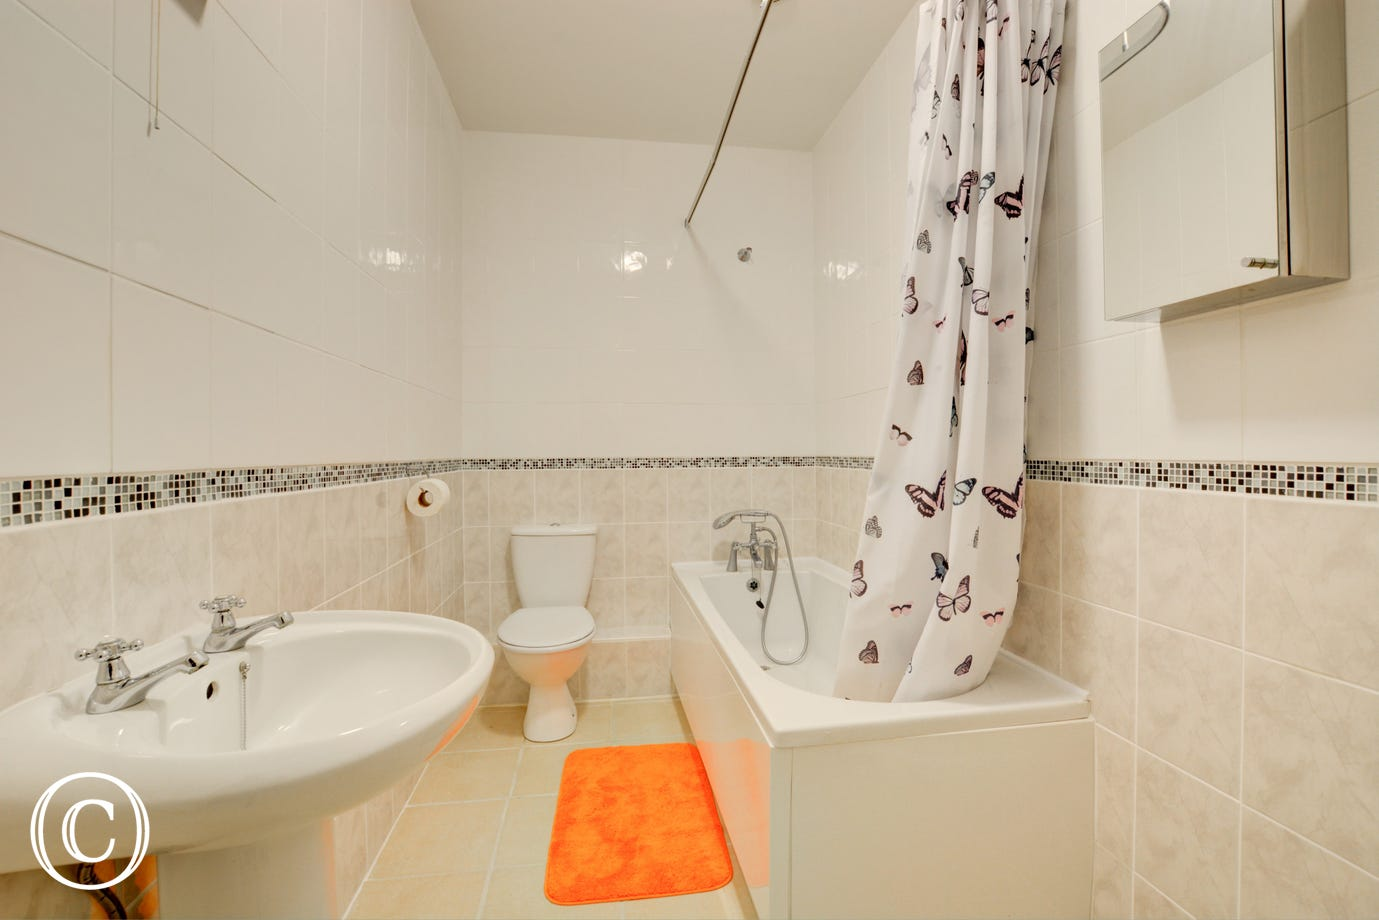 Bathroom with bath and hand held shower